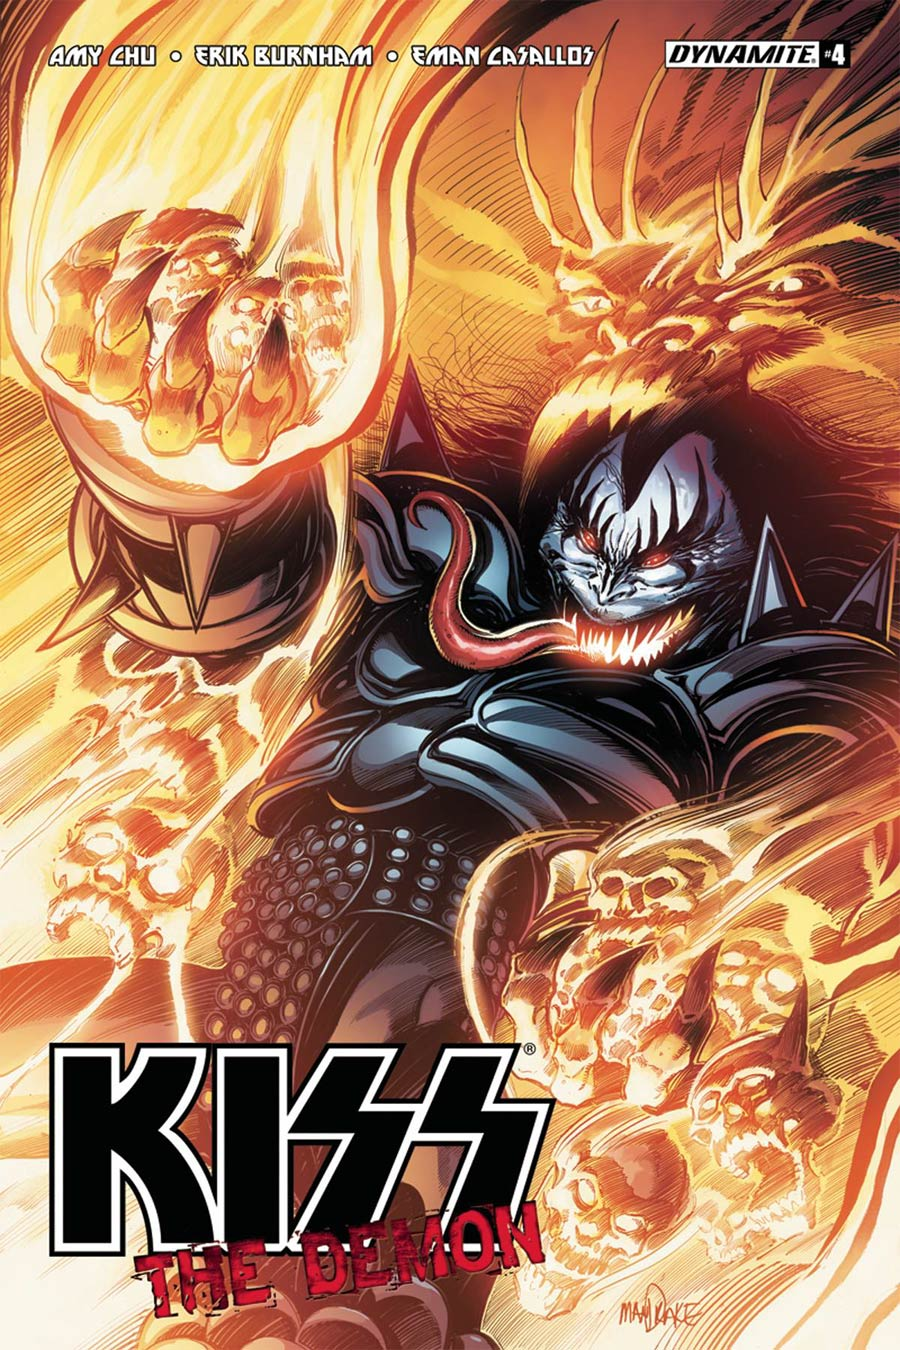 KISS The Demon #4 Cover B Variant Tom Mandrake Cover